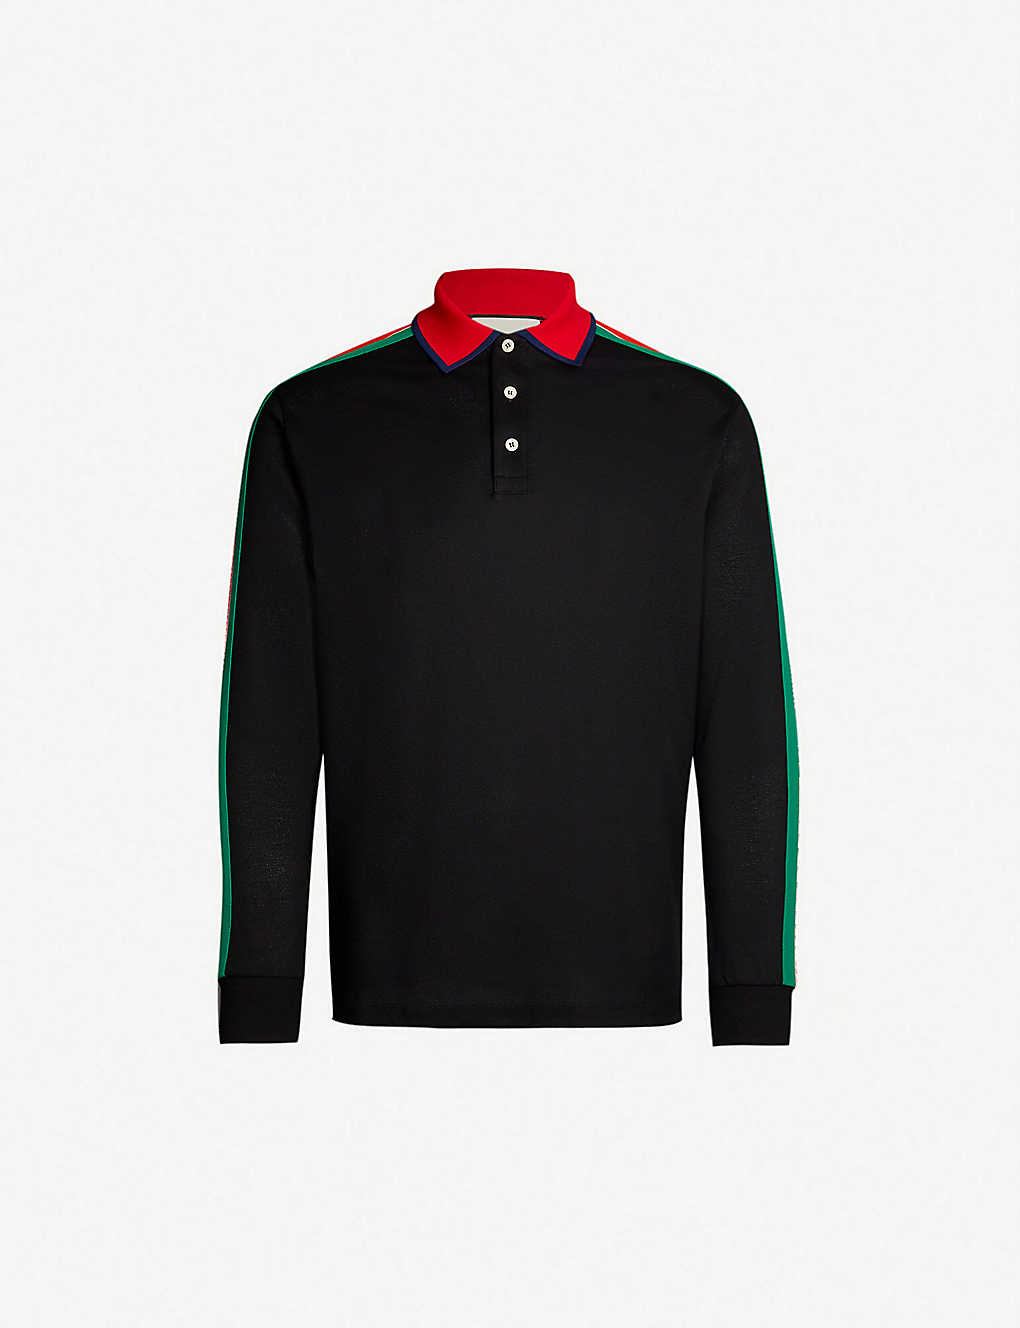 5ae0d92310a3 GUCCI - Logo-print cotton-piqué polo shirt | Selfridges.com